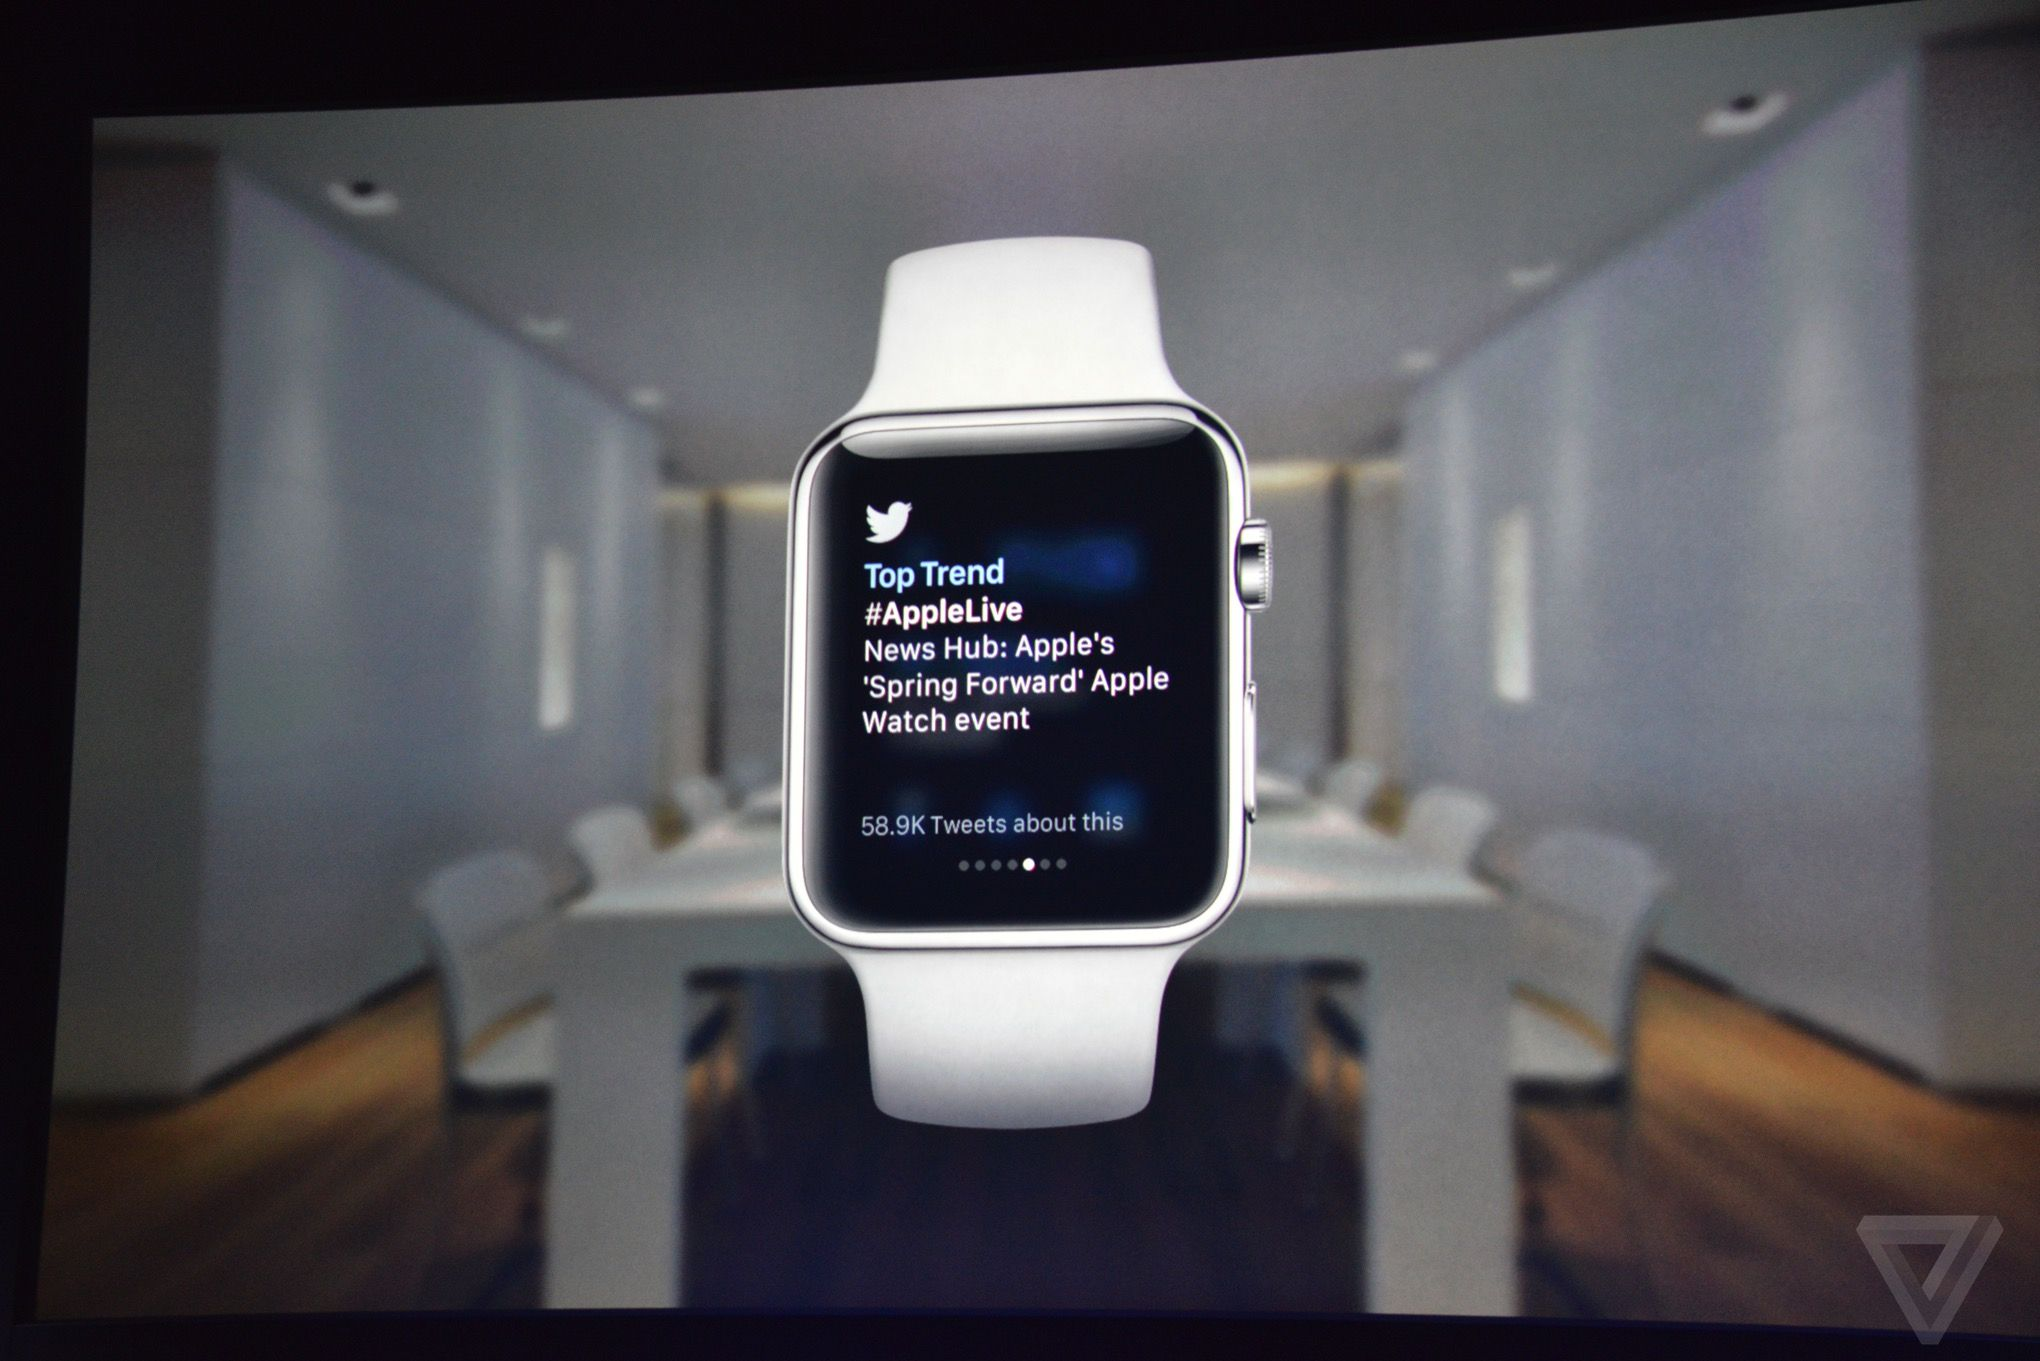 The best apps for Apple Watch shown at today's event | The Verge